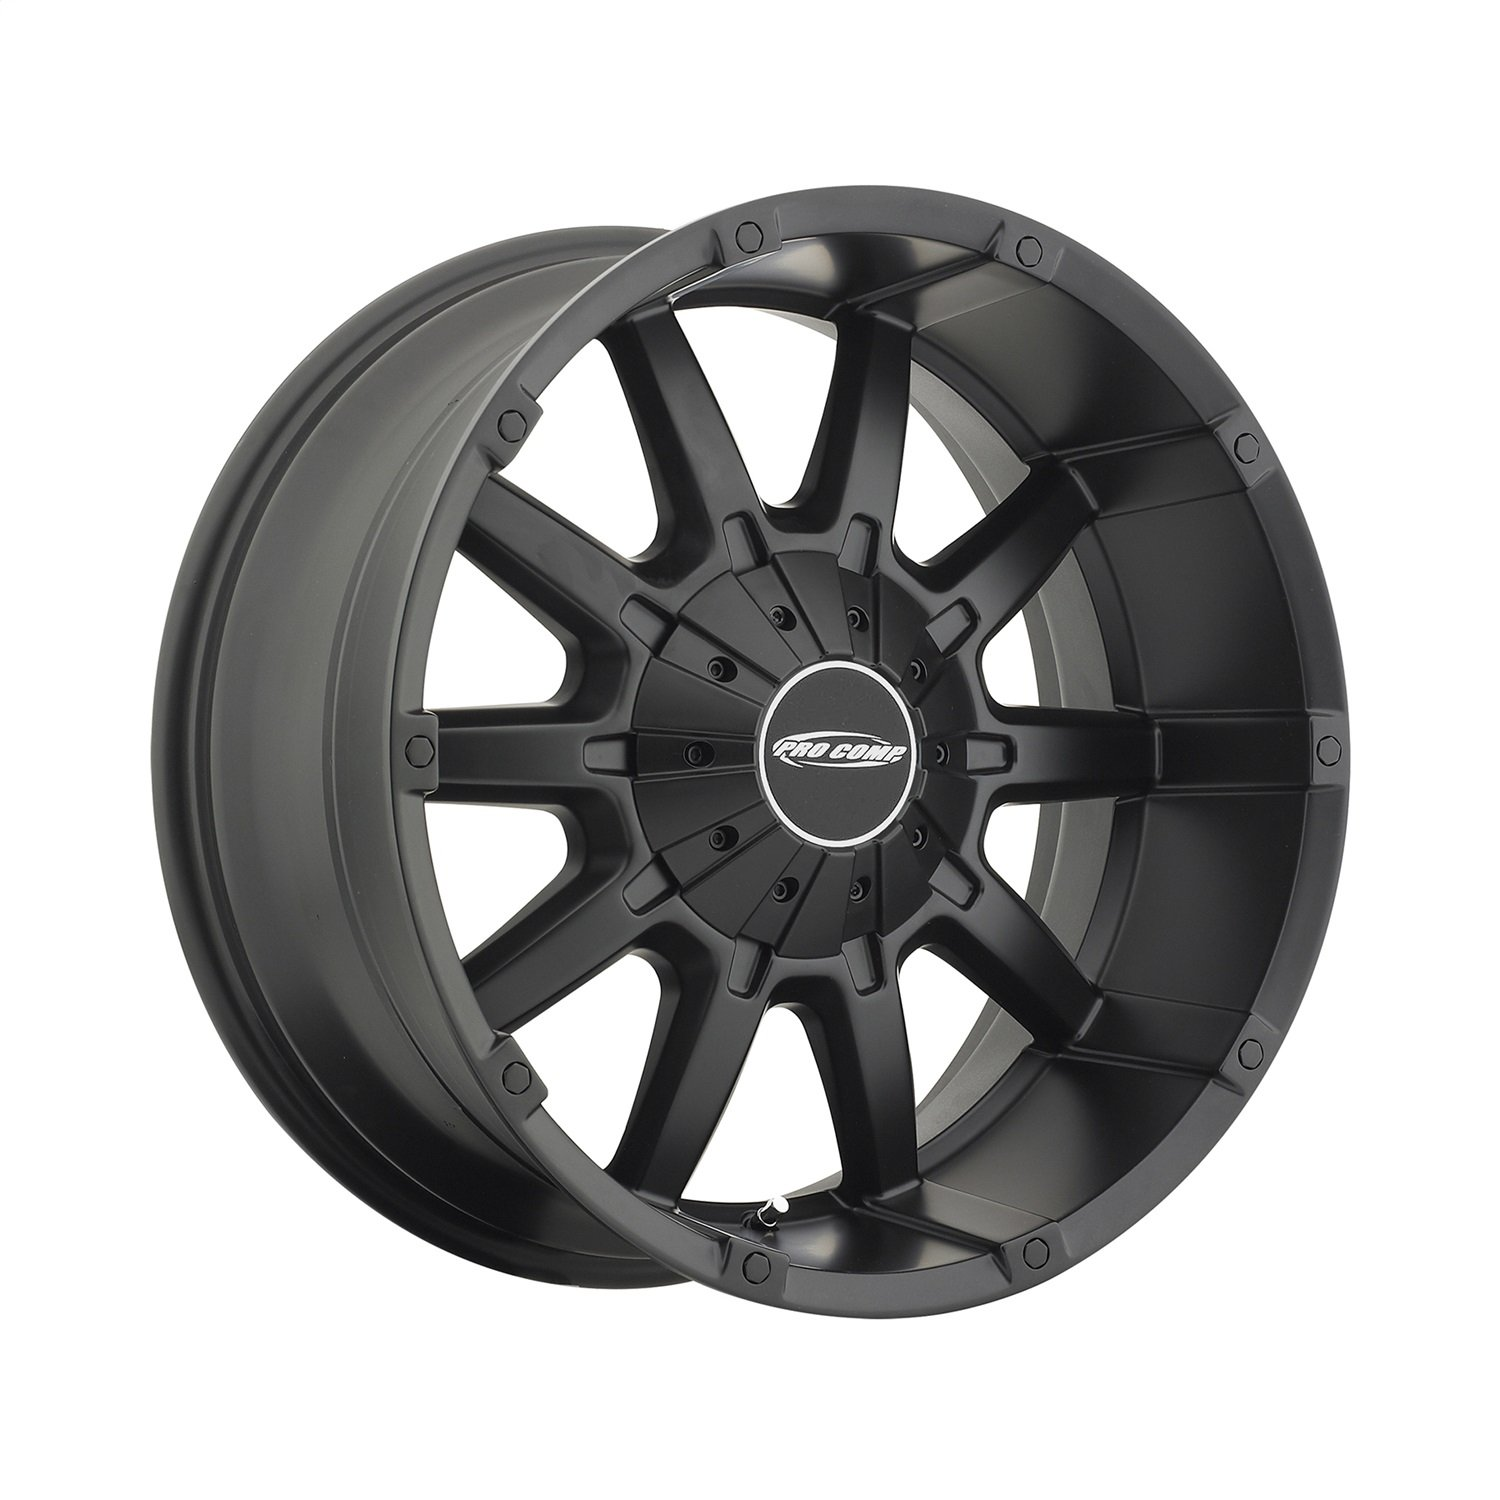 Pro Comp Alloys Series 50 10 Gauge Wheel with Satin Black Finish (20x9''/5x5'')